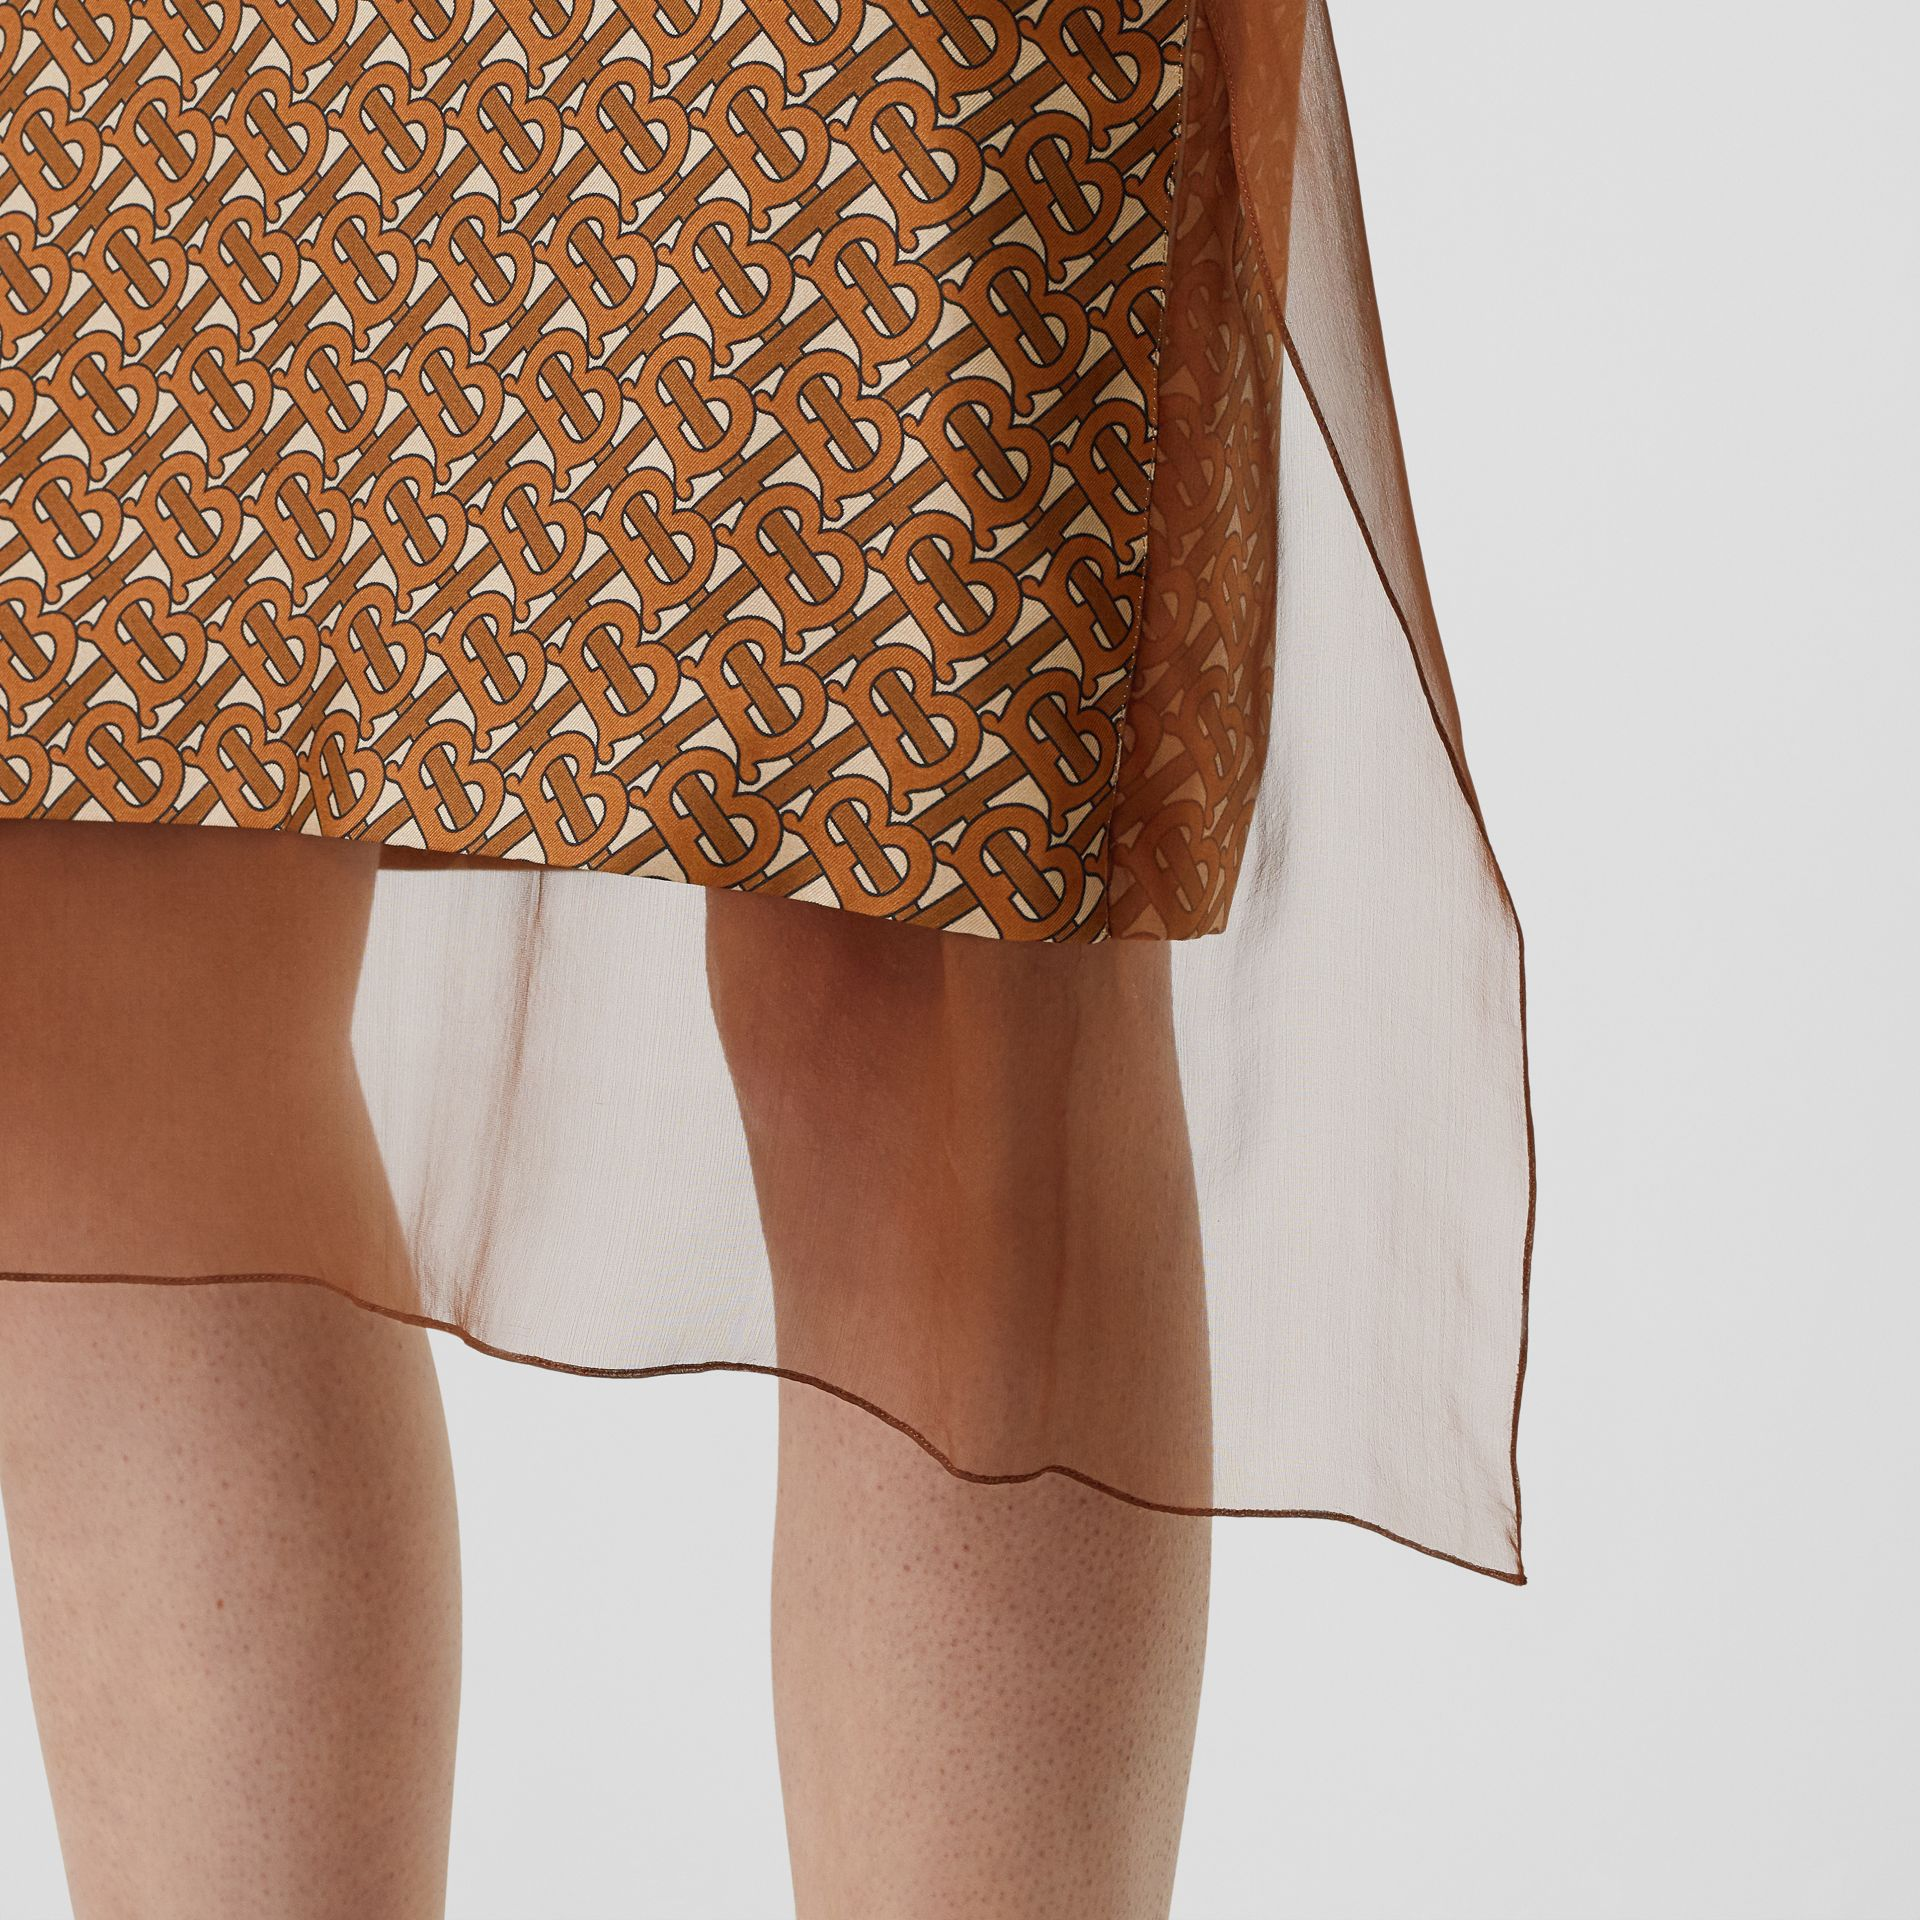 Scarf Detail Monogram Print Silk Pencil Skirt in Brown - Women | Burberry United Kingdom - gallery image 1